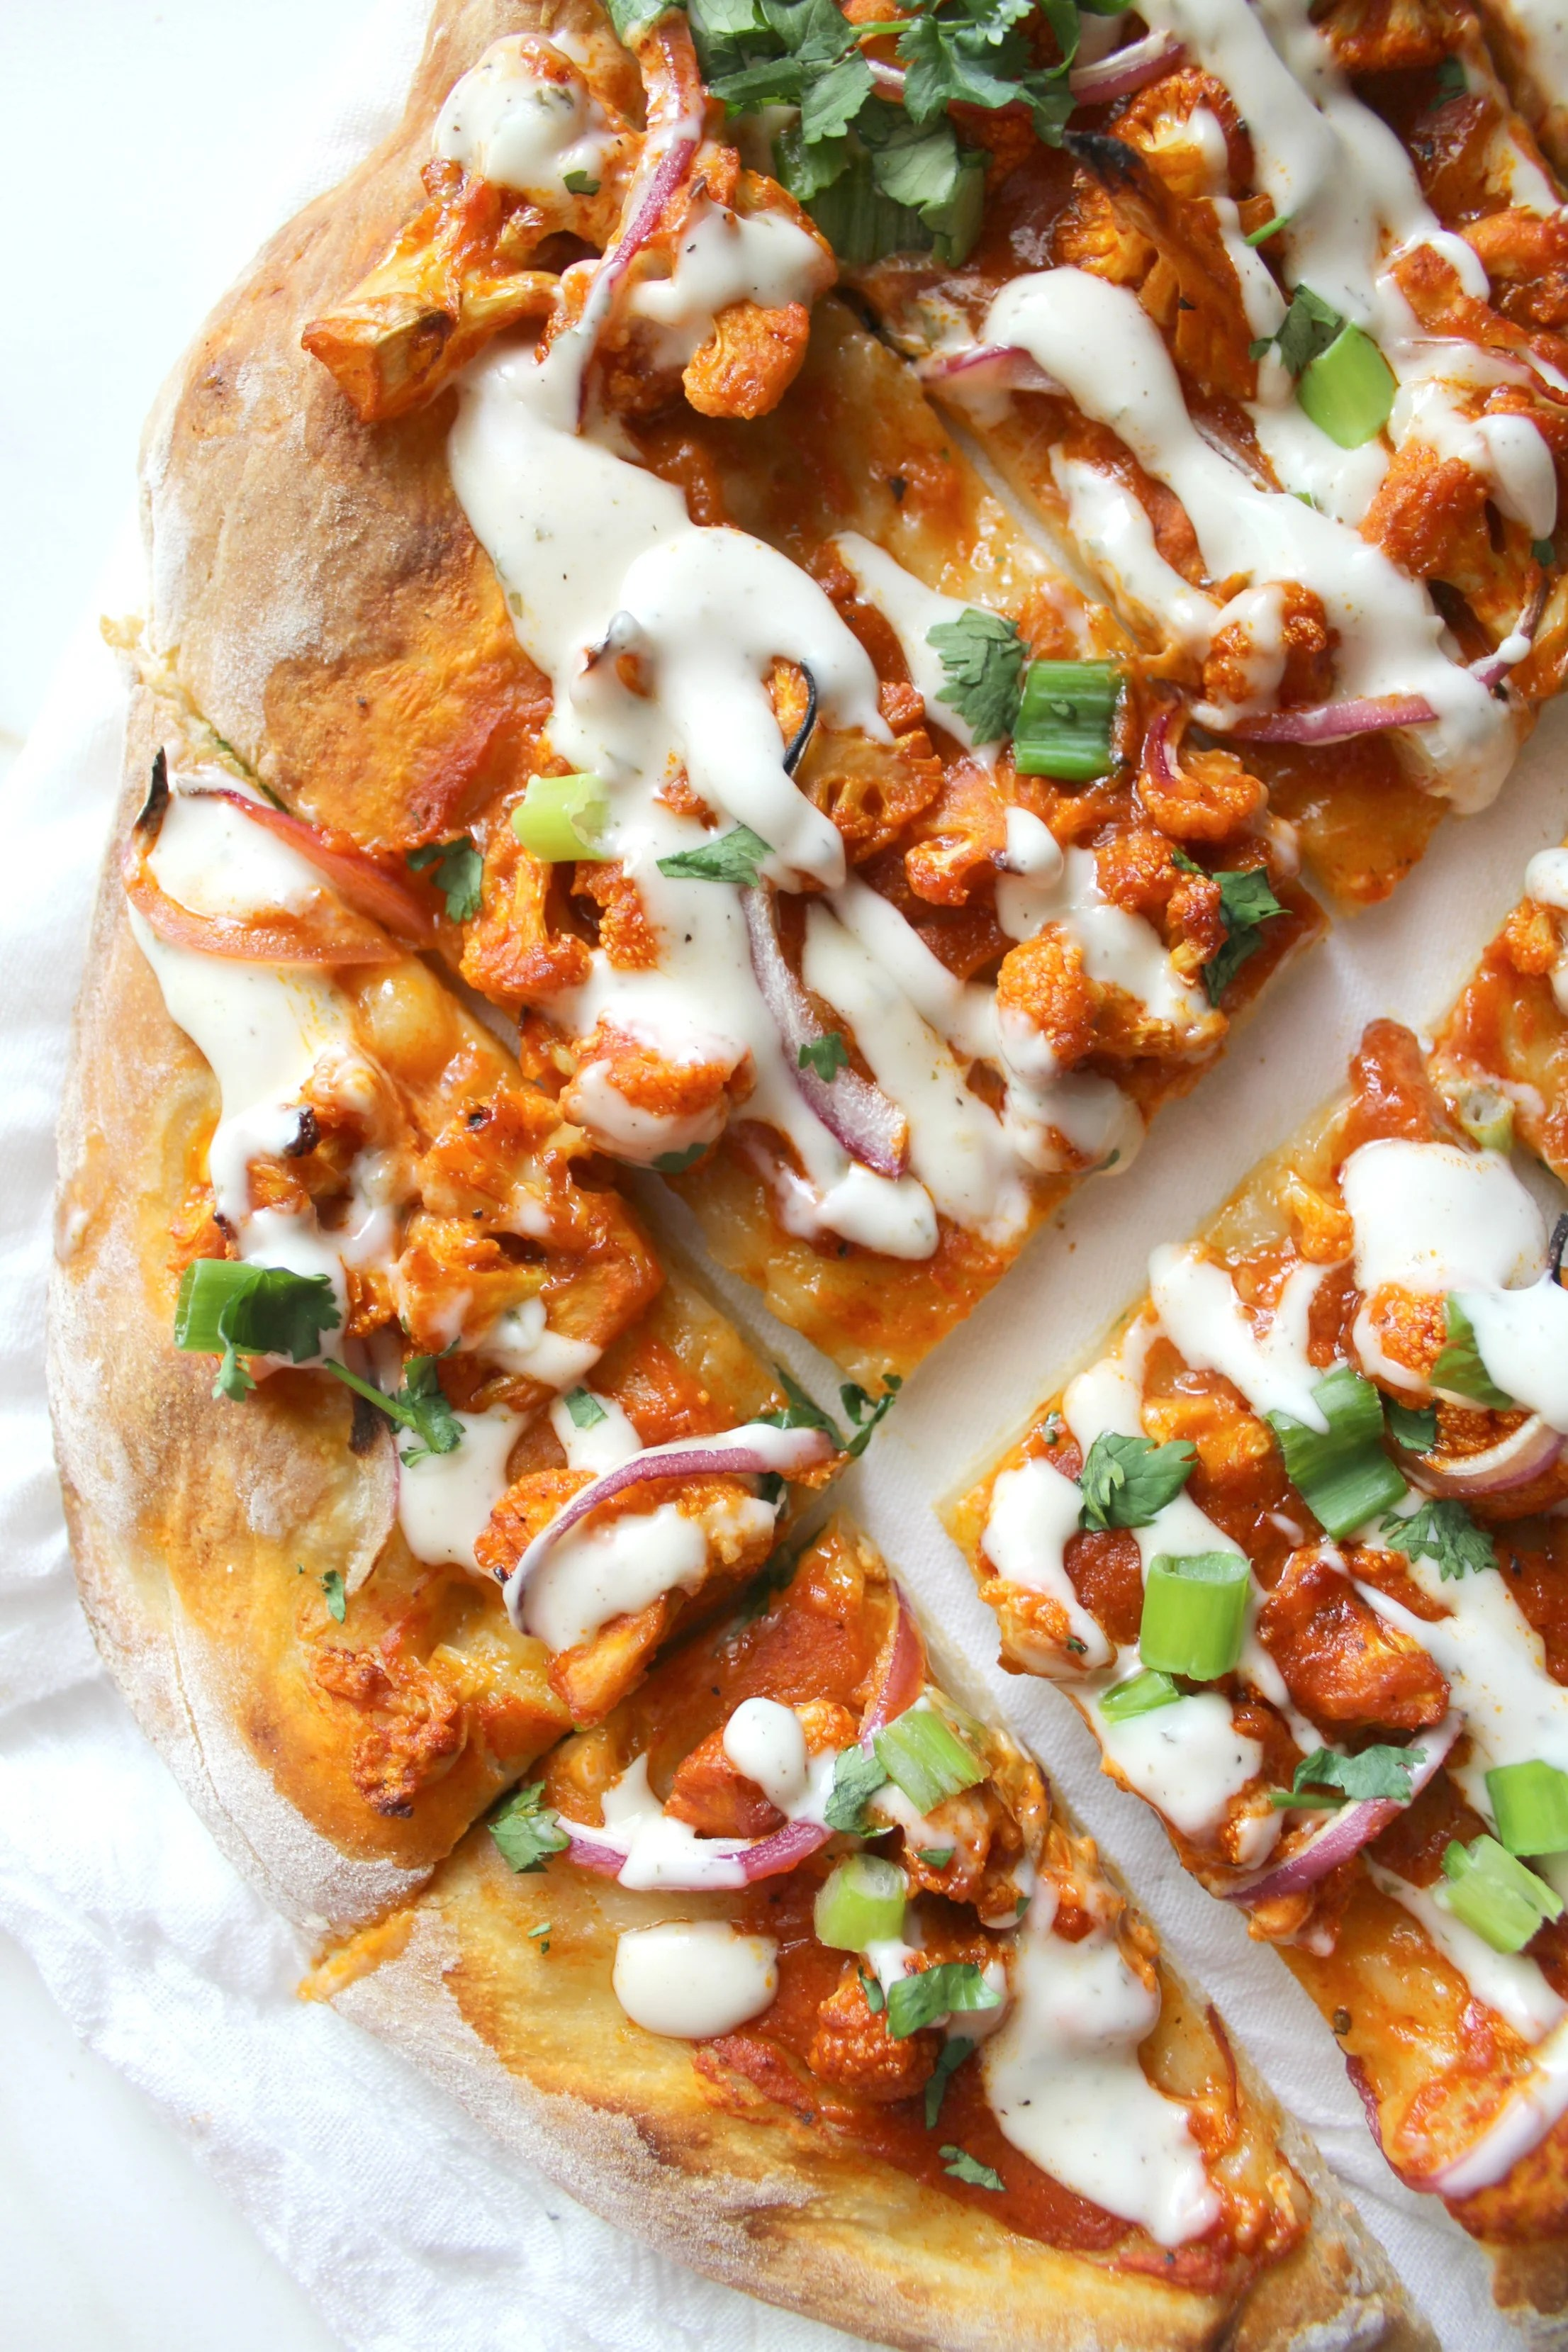 This Vegan Roasted Cauliflower Buffalo Pizza is the perfect balance of spiciness and creaminess with a nice crunch from the cauliflower | ThisSavoryVegan.com